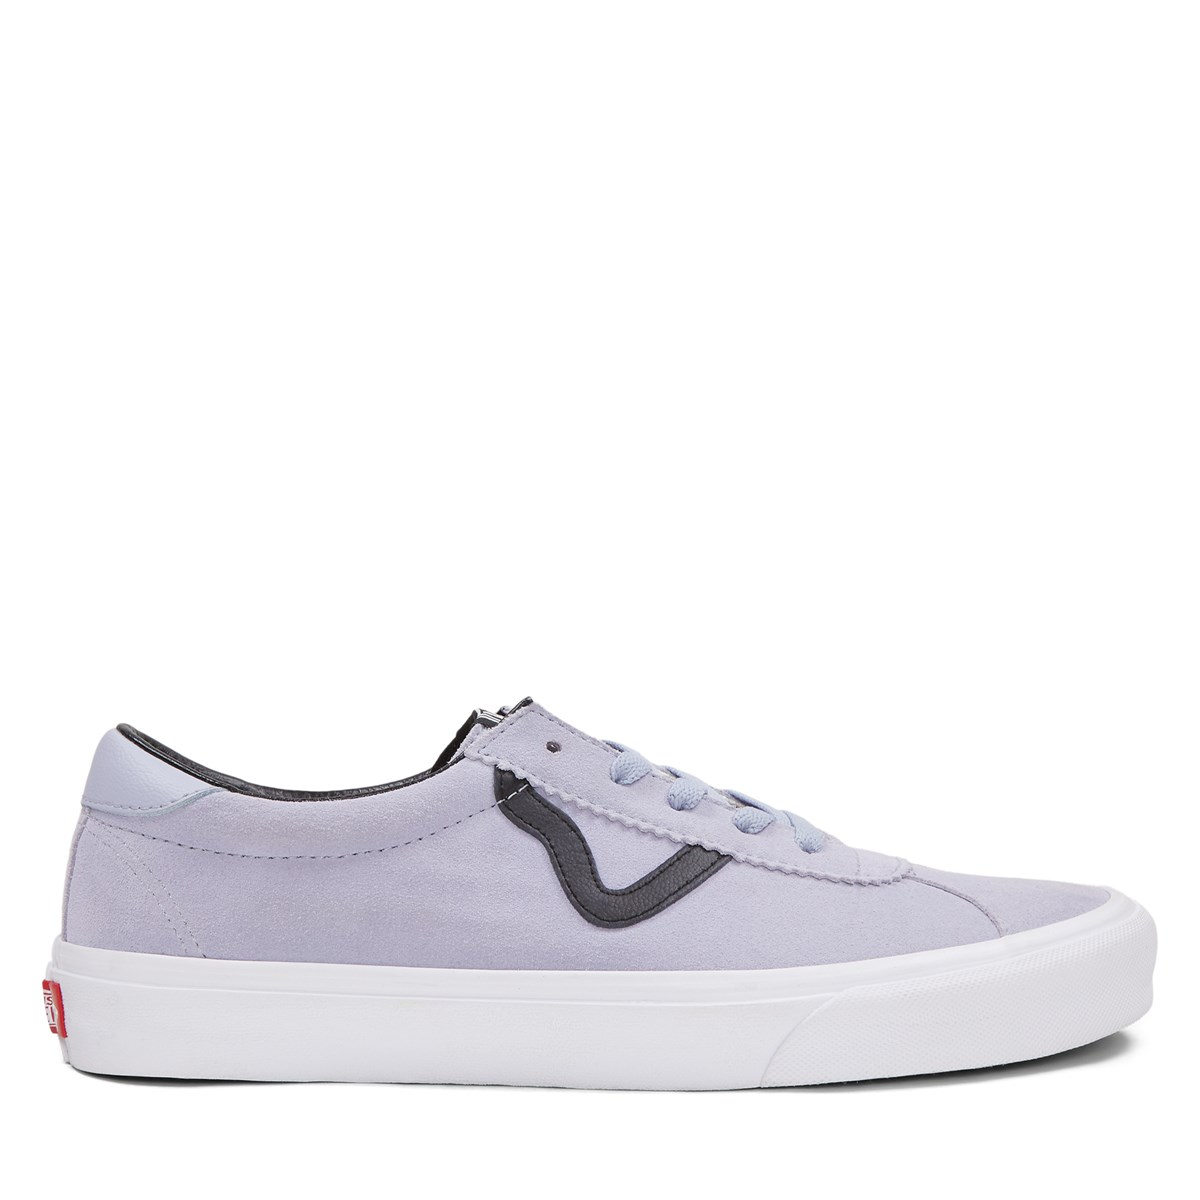 Women's Sport Sneakers in Lilac